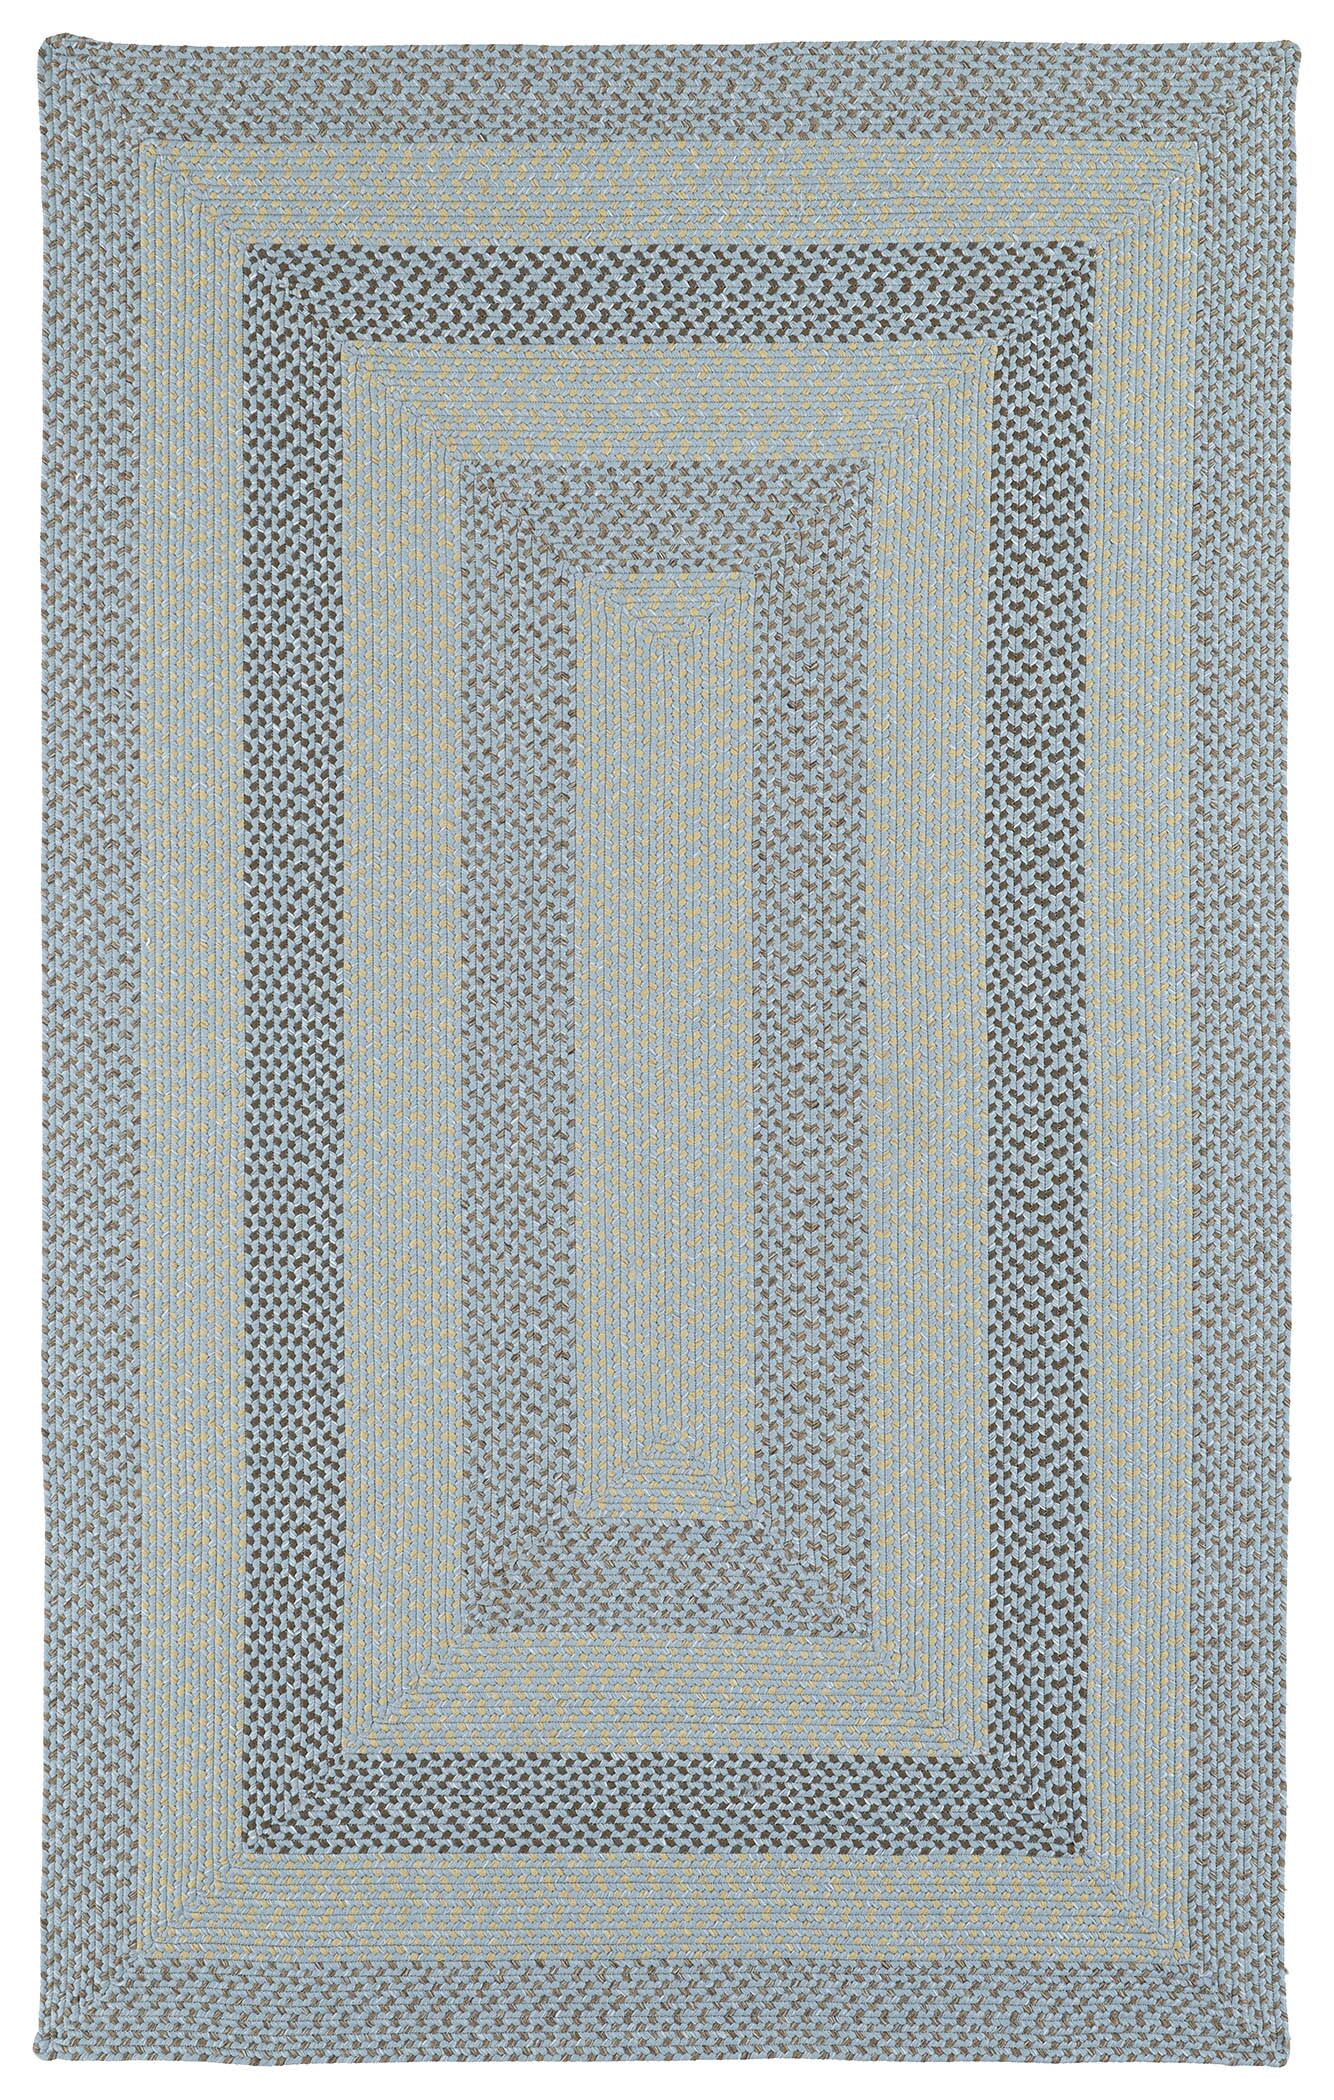 Partridge Hand-Woven Blue Indoor/Outdoor Area Rug Rug Size: Rectangle 9' x 12'